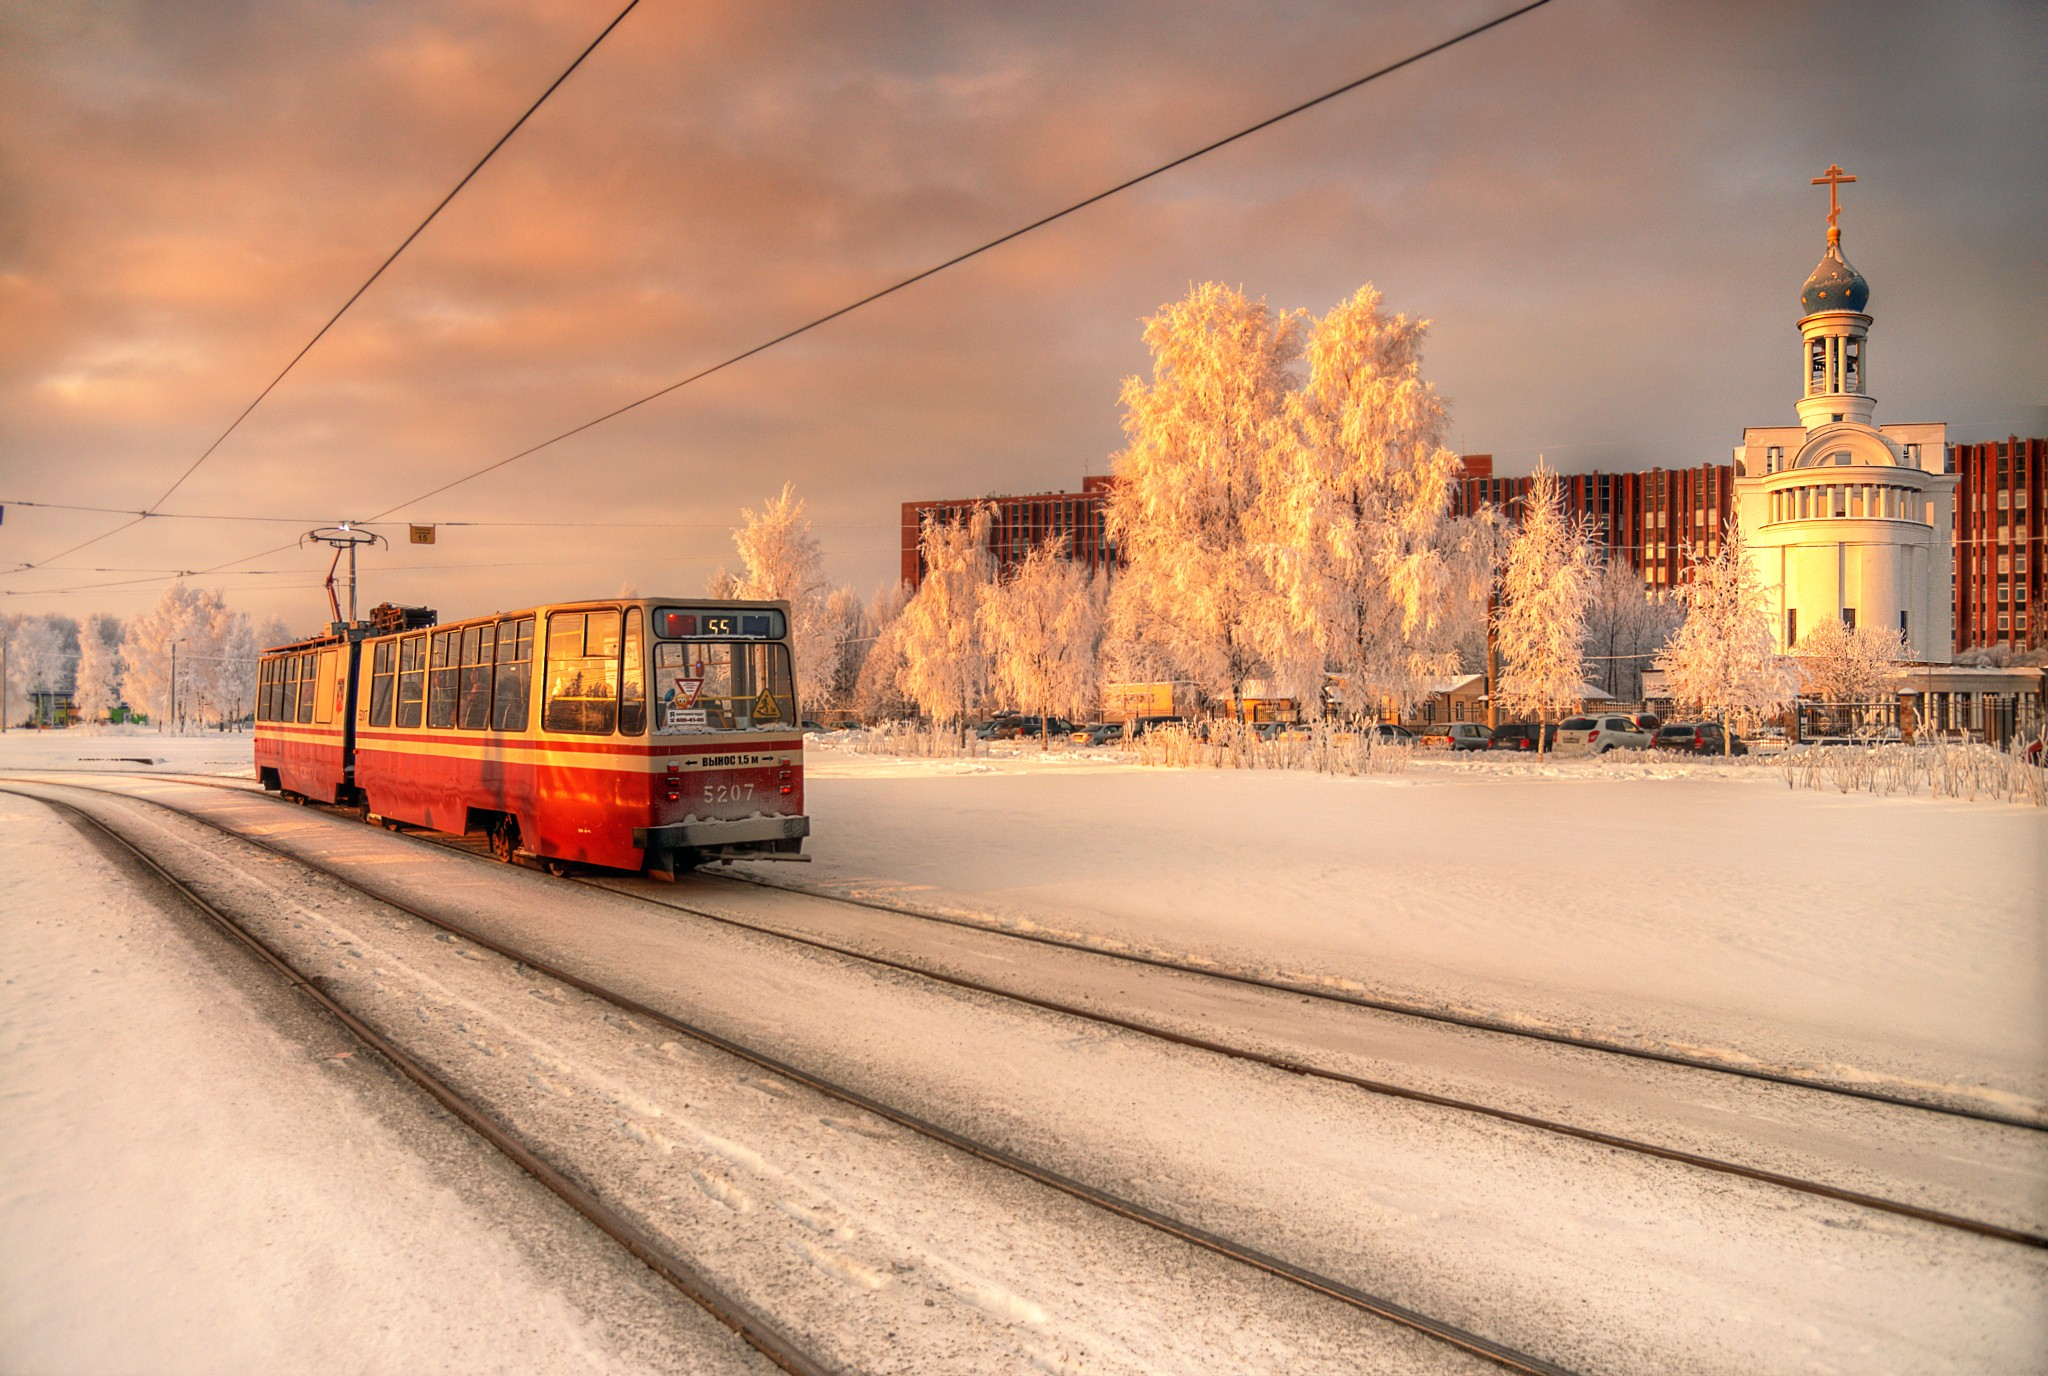 General 2048x1376 winter St. Petersburg city tram church Orthodox snow evening Russia